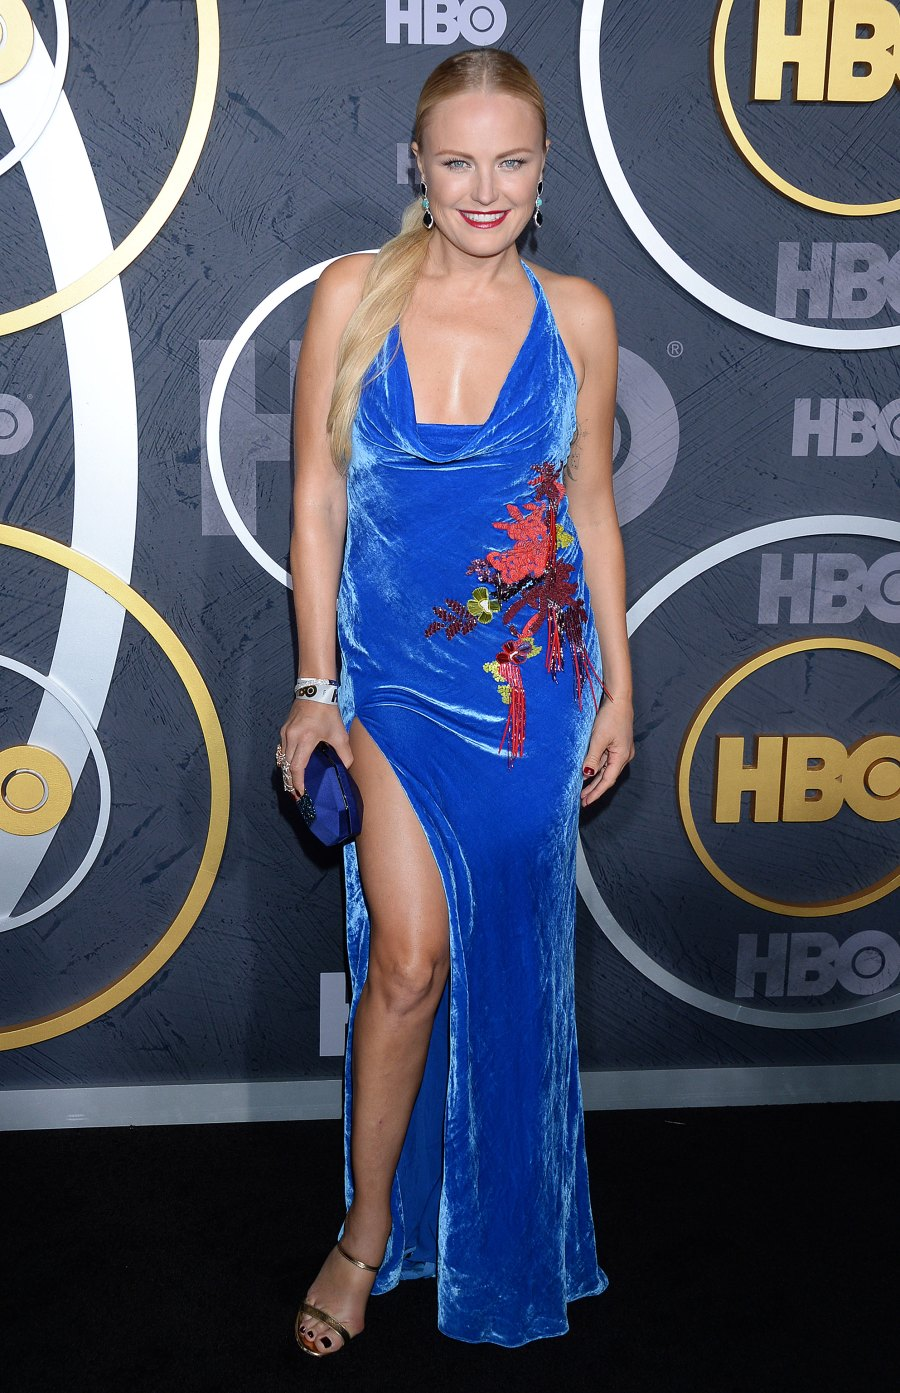 Emmys After Parties - Malin Akerman